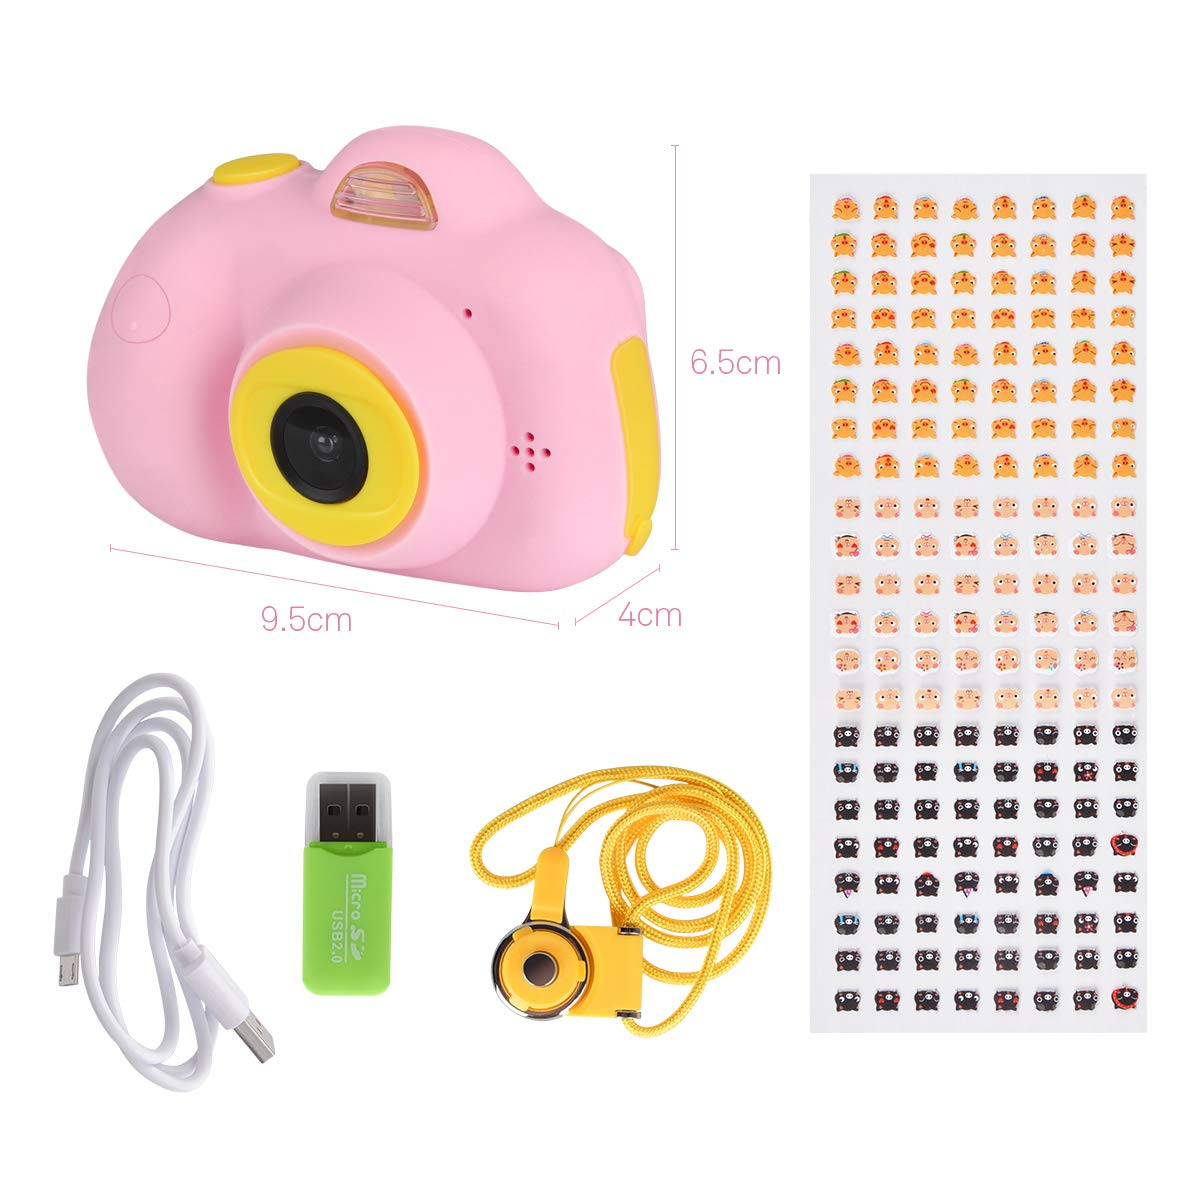 Kids Cameras Dual Selfie Digital Camera HD Video Recorder Action Camera Camcorder for 4-9 Year Old Kids Birthday Festival Gifts Toys for Children Boys Girls 2.0'' LCD Screen 4X Digital Zoom (Pink) by Tyhbelle (Image #7)